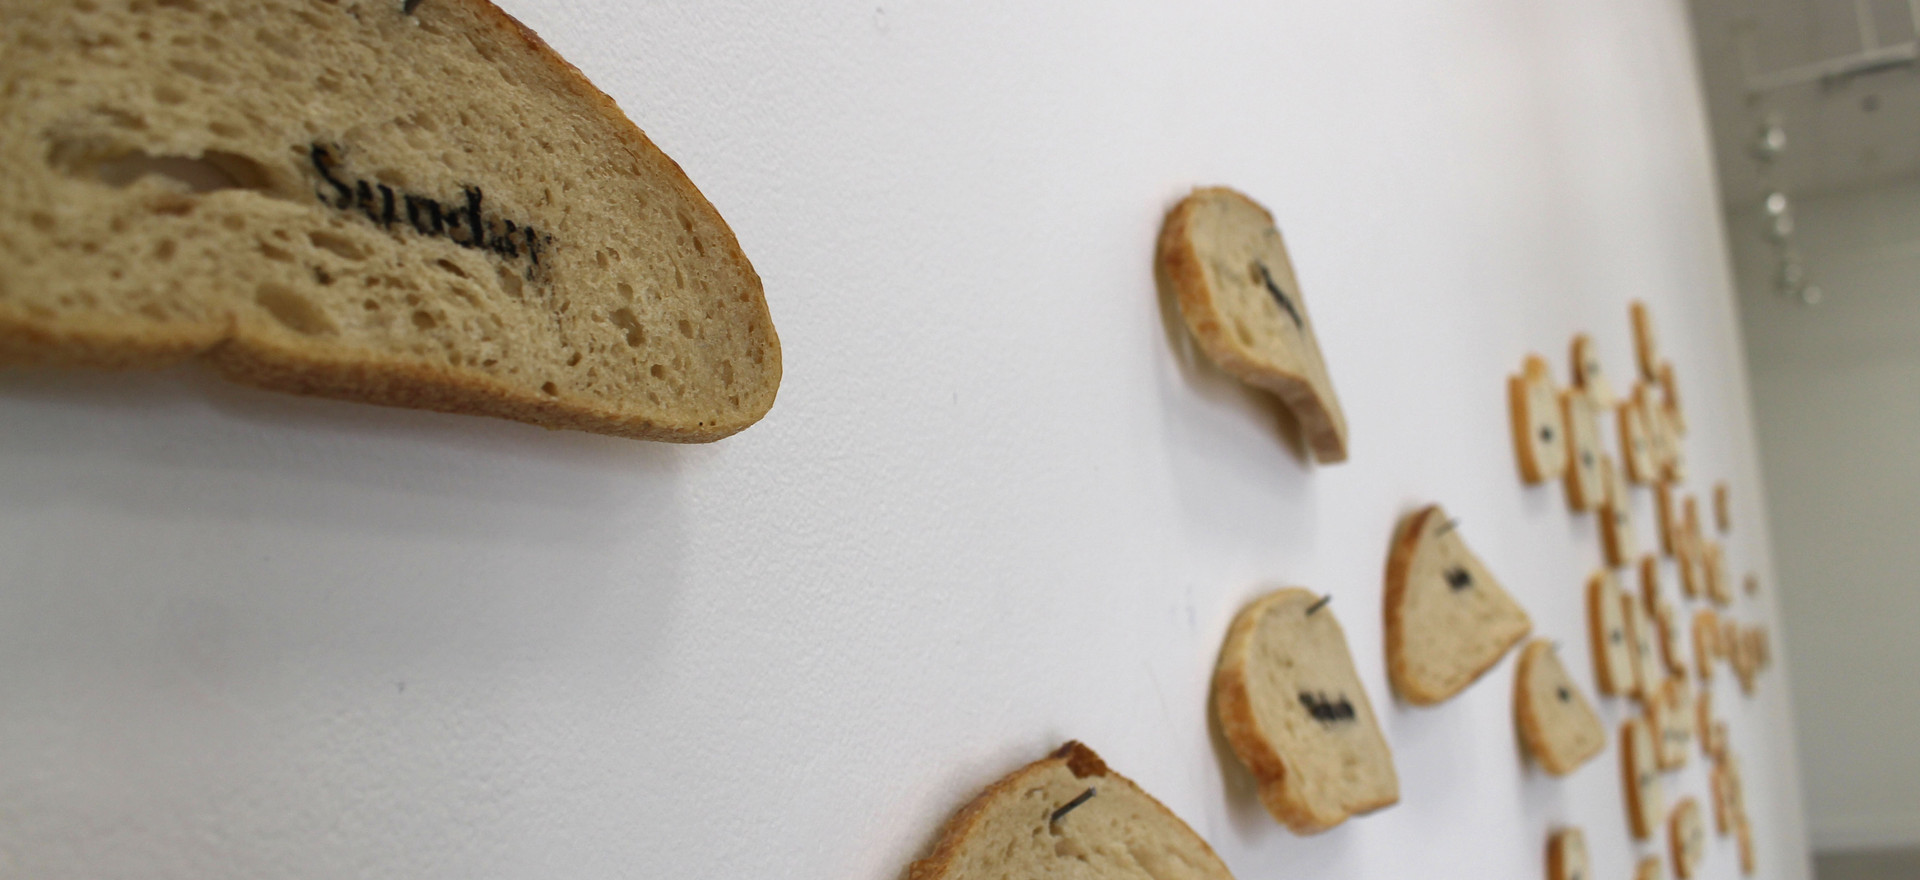 Our daily bread, detail